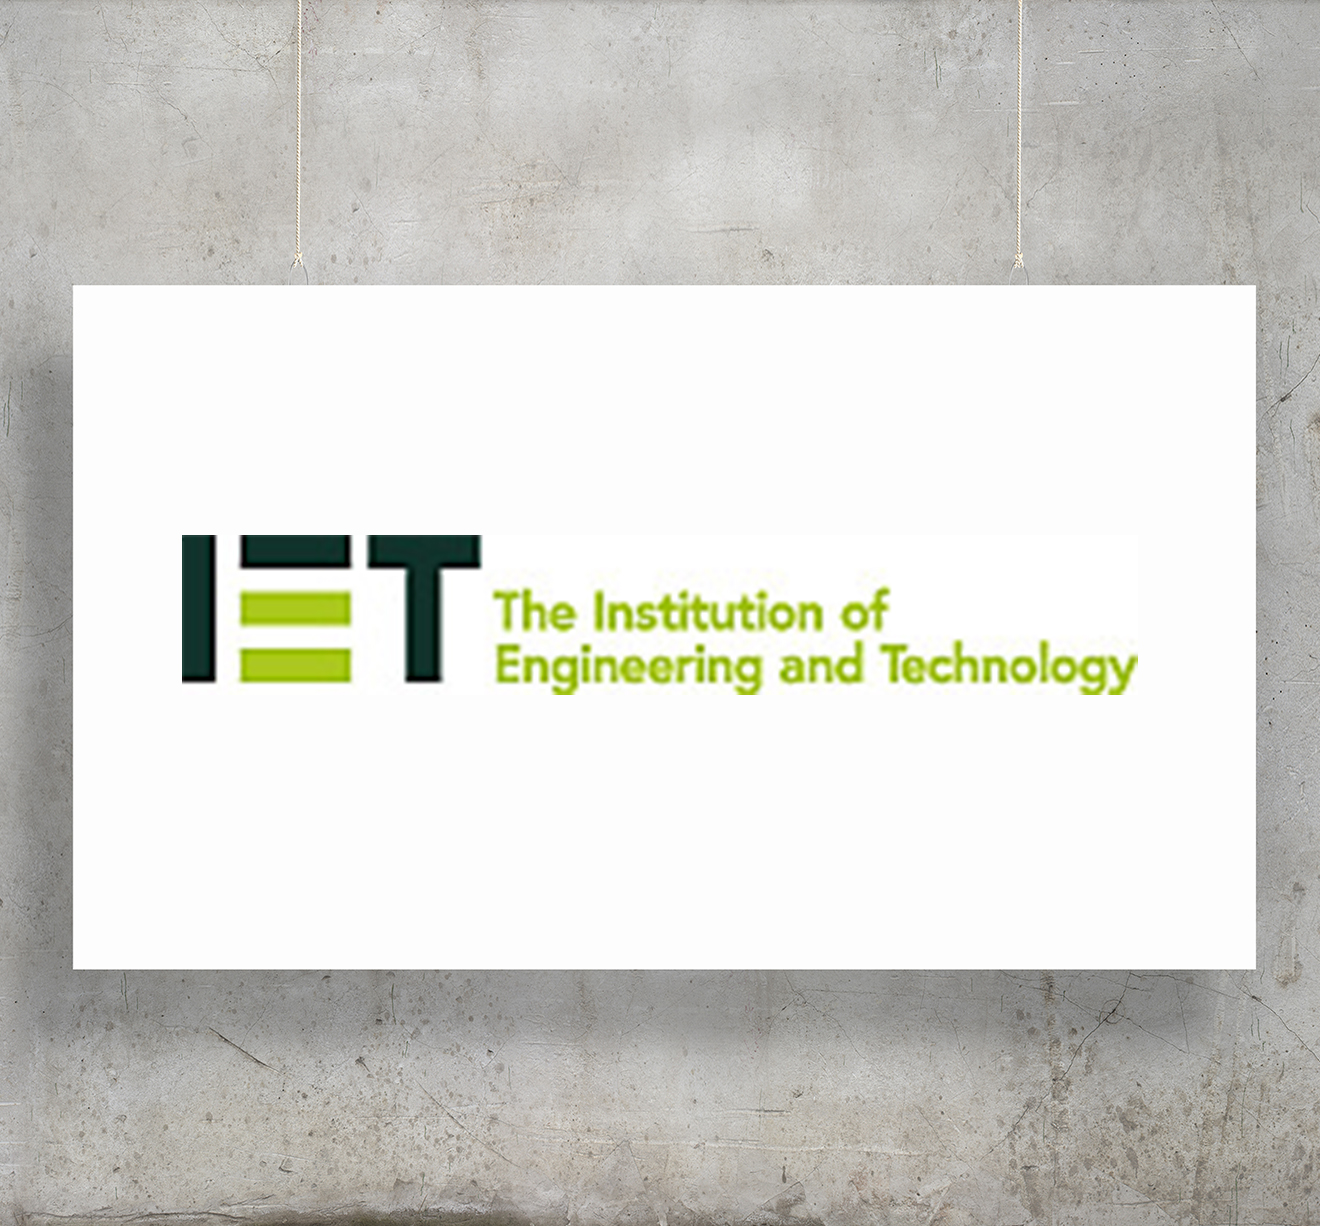 Company Profile - The Institution of Engineering and Technology (IET)